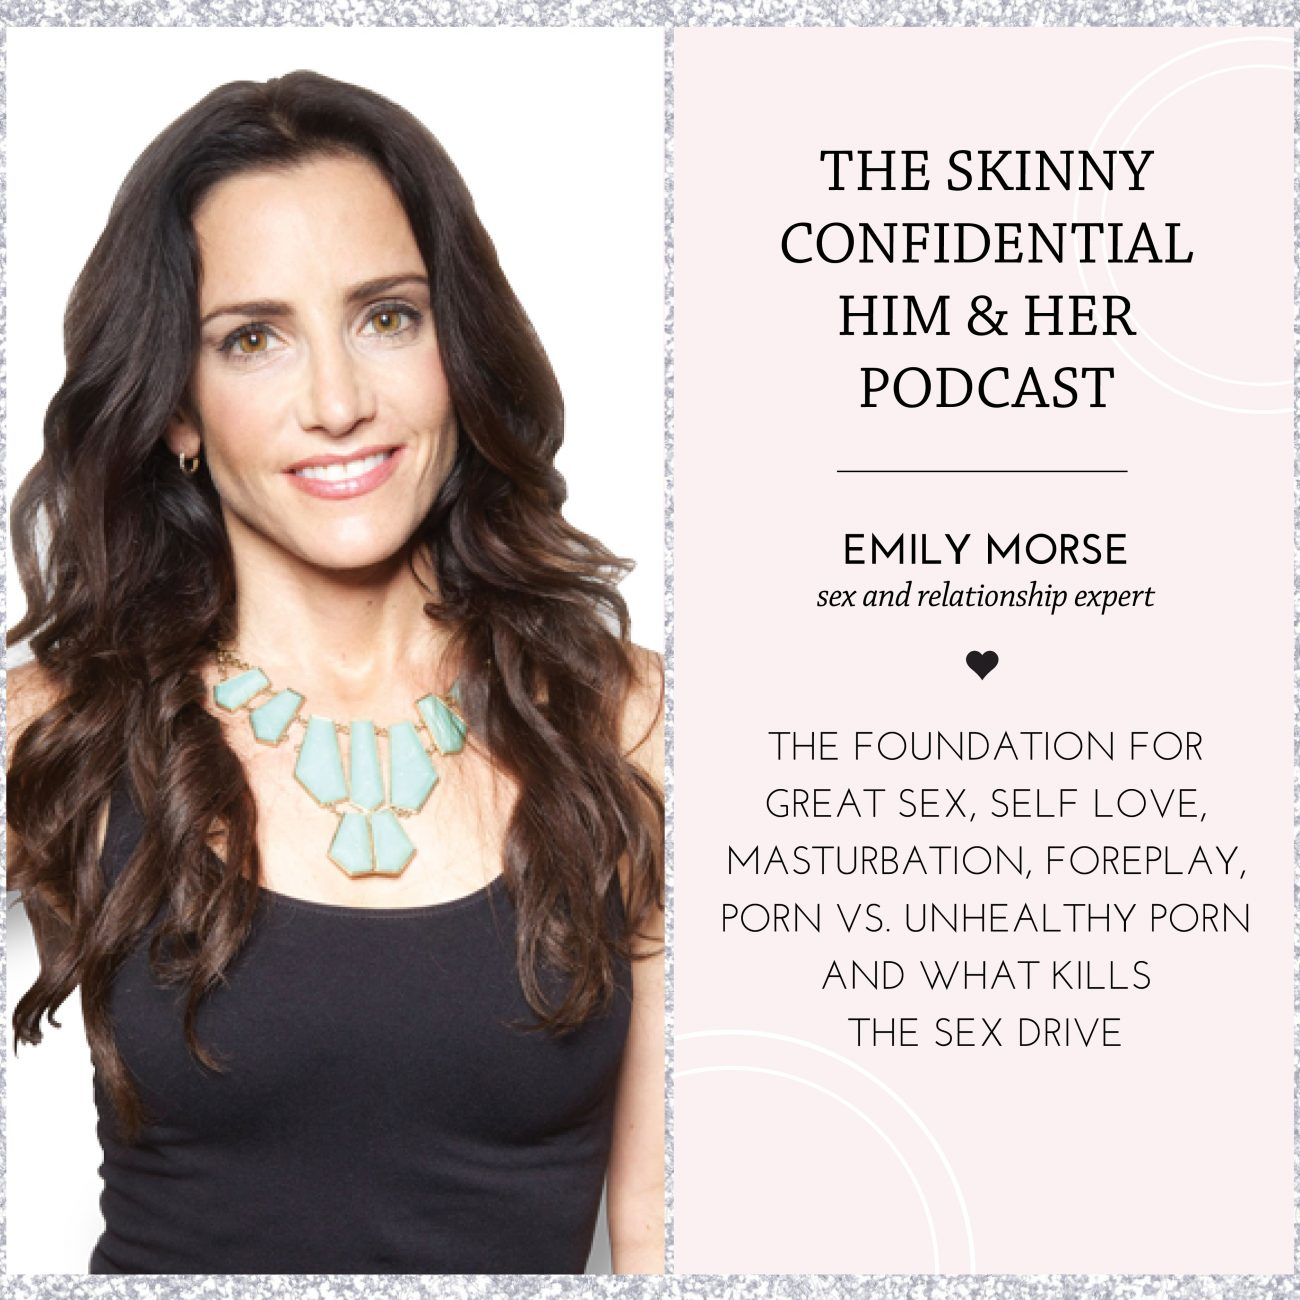 emily morse relationships masturbation sex toys by the skinny confidential